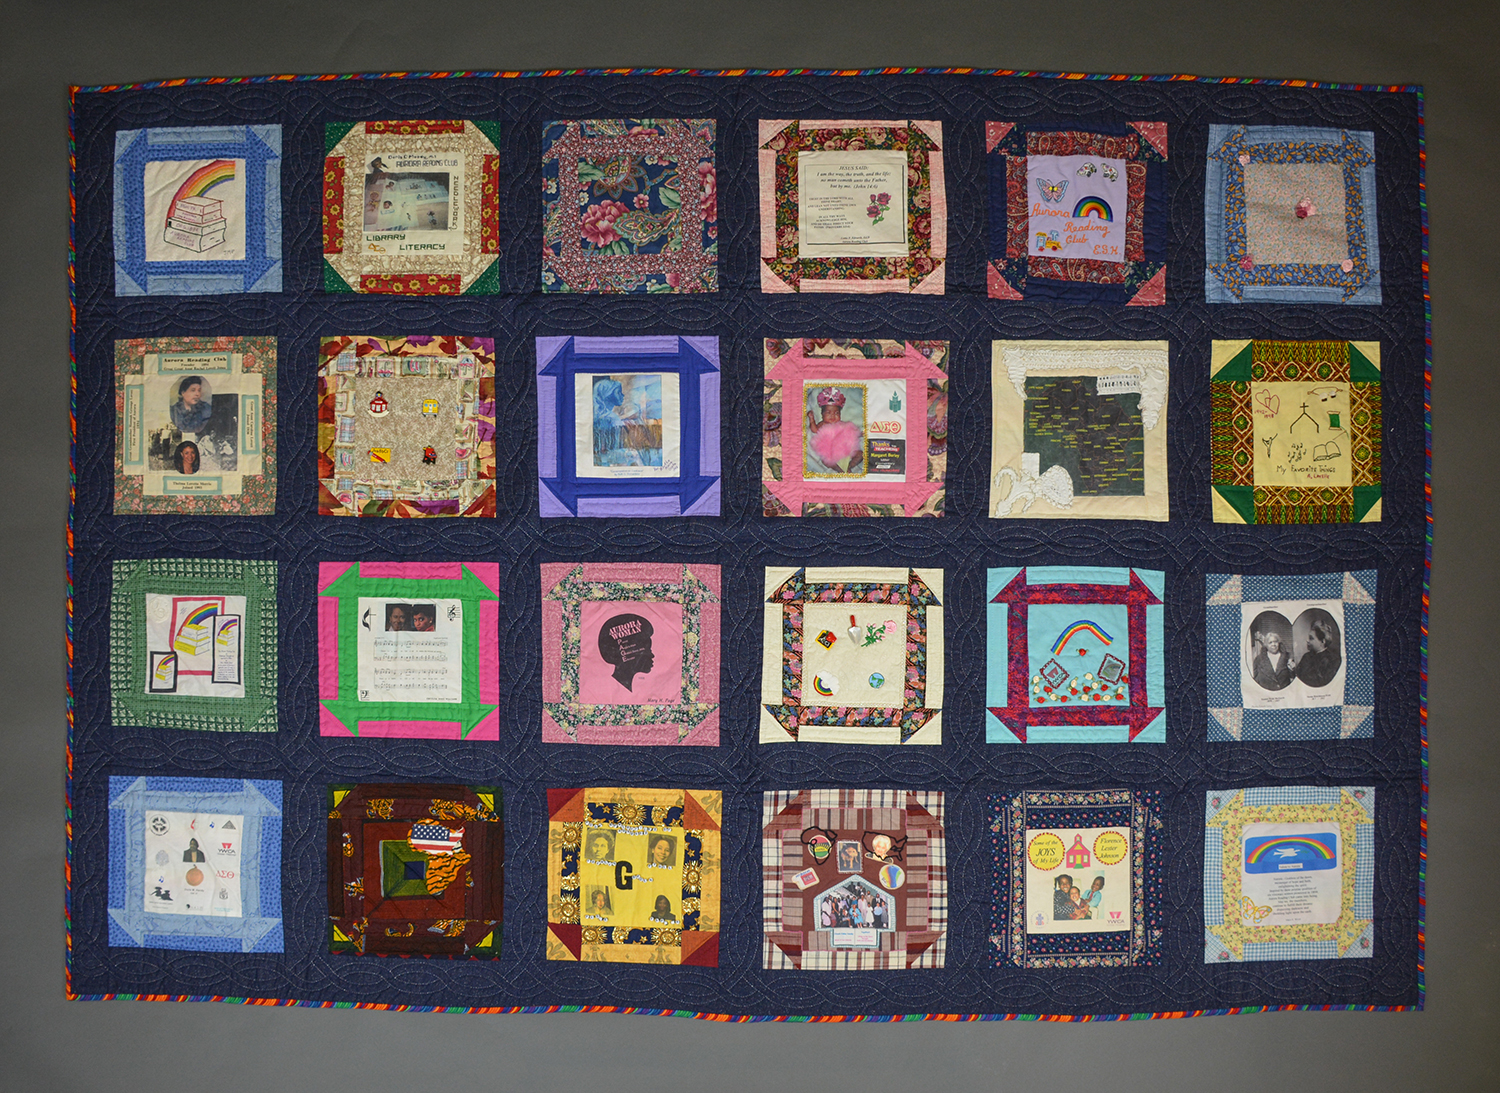 Aurora Reading Club quilt, on display in the Special Collections Gallery.